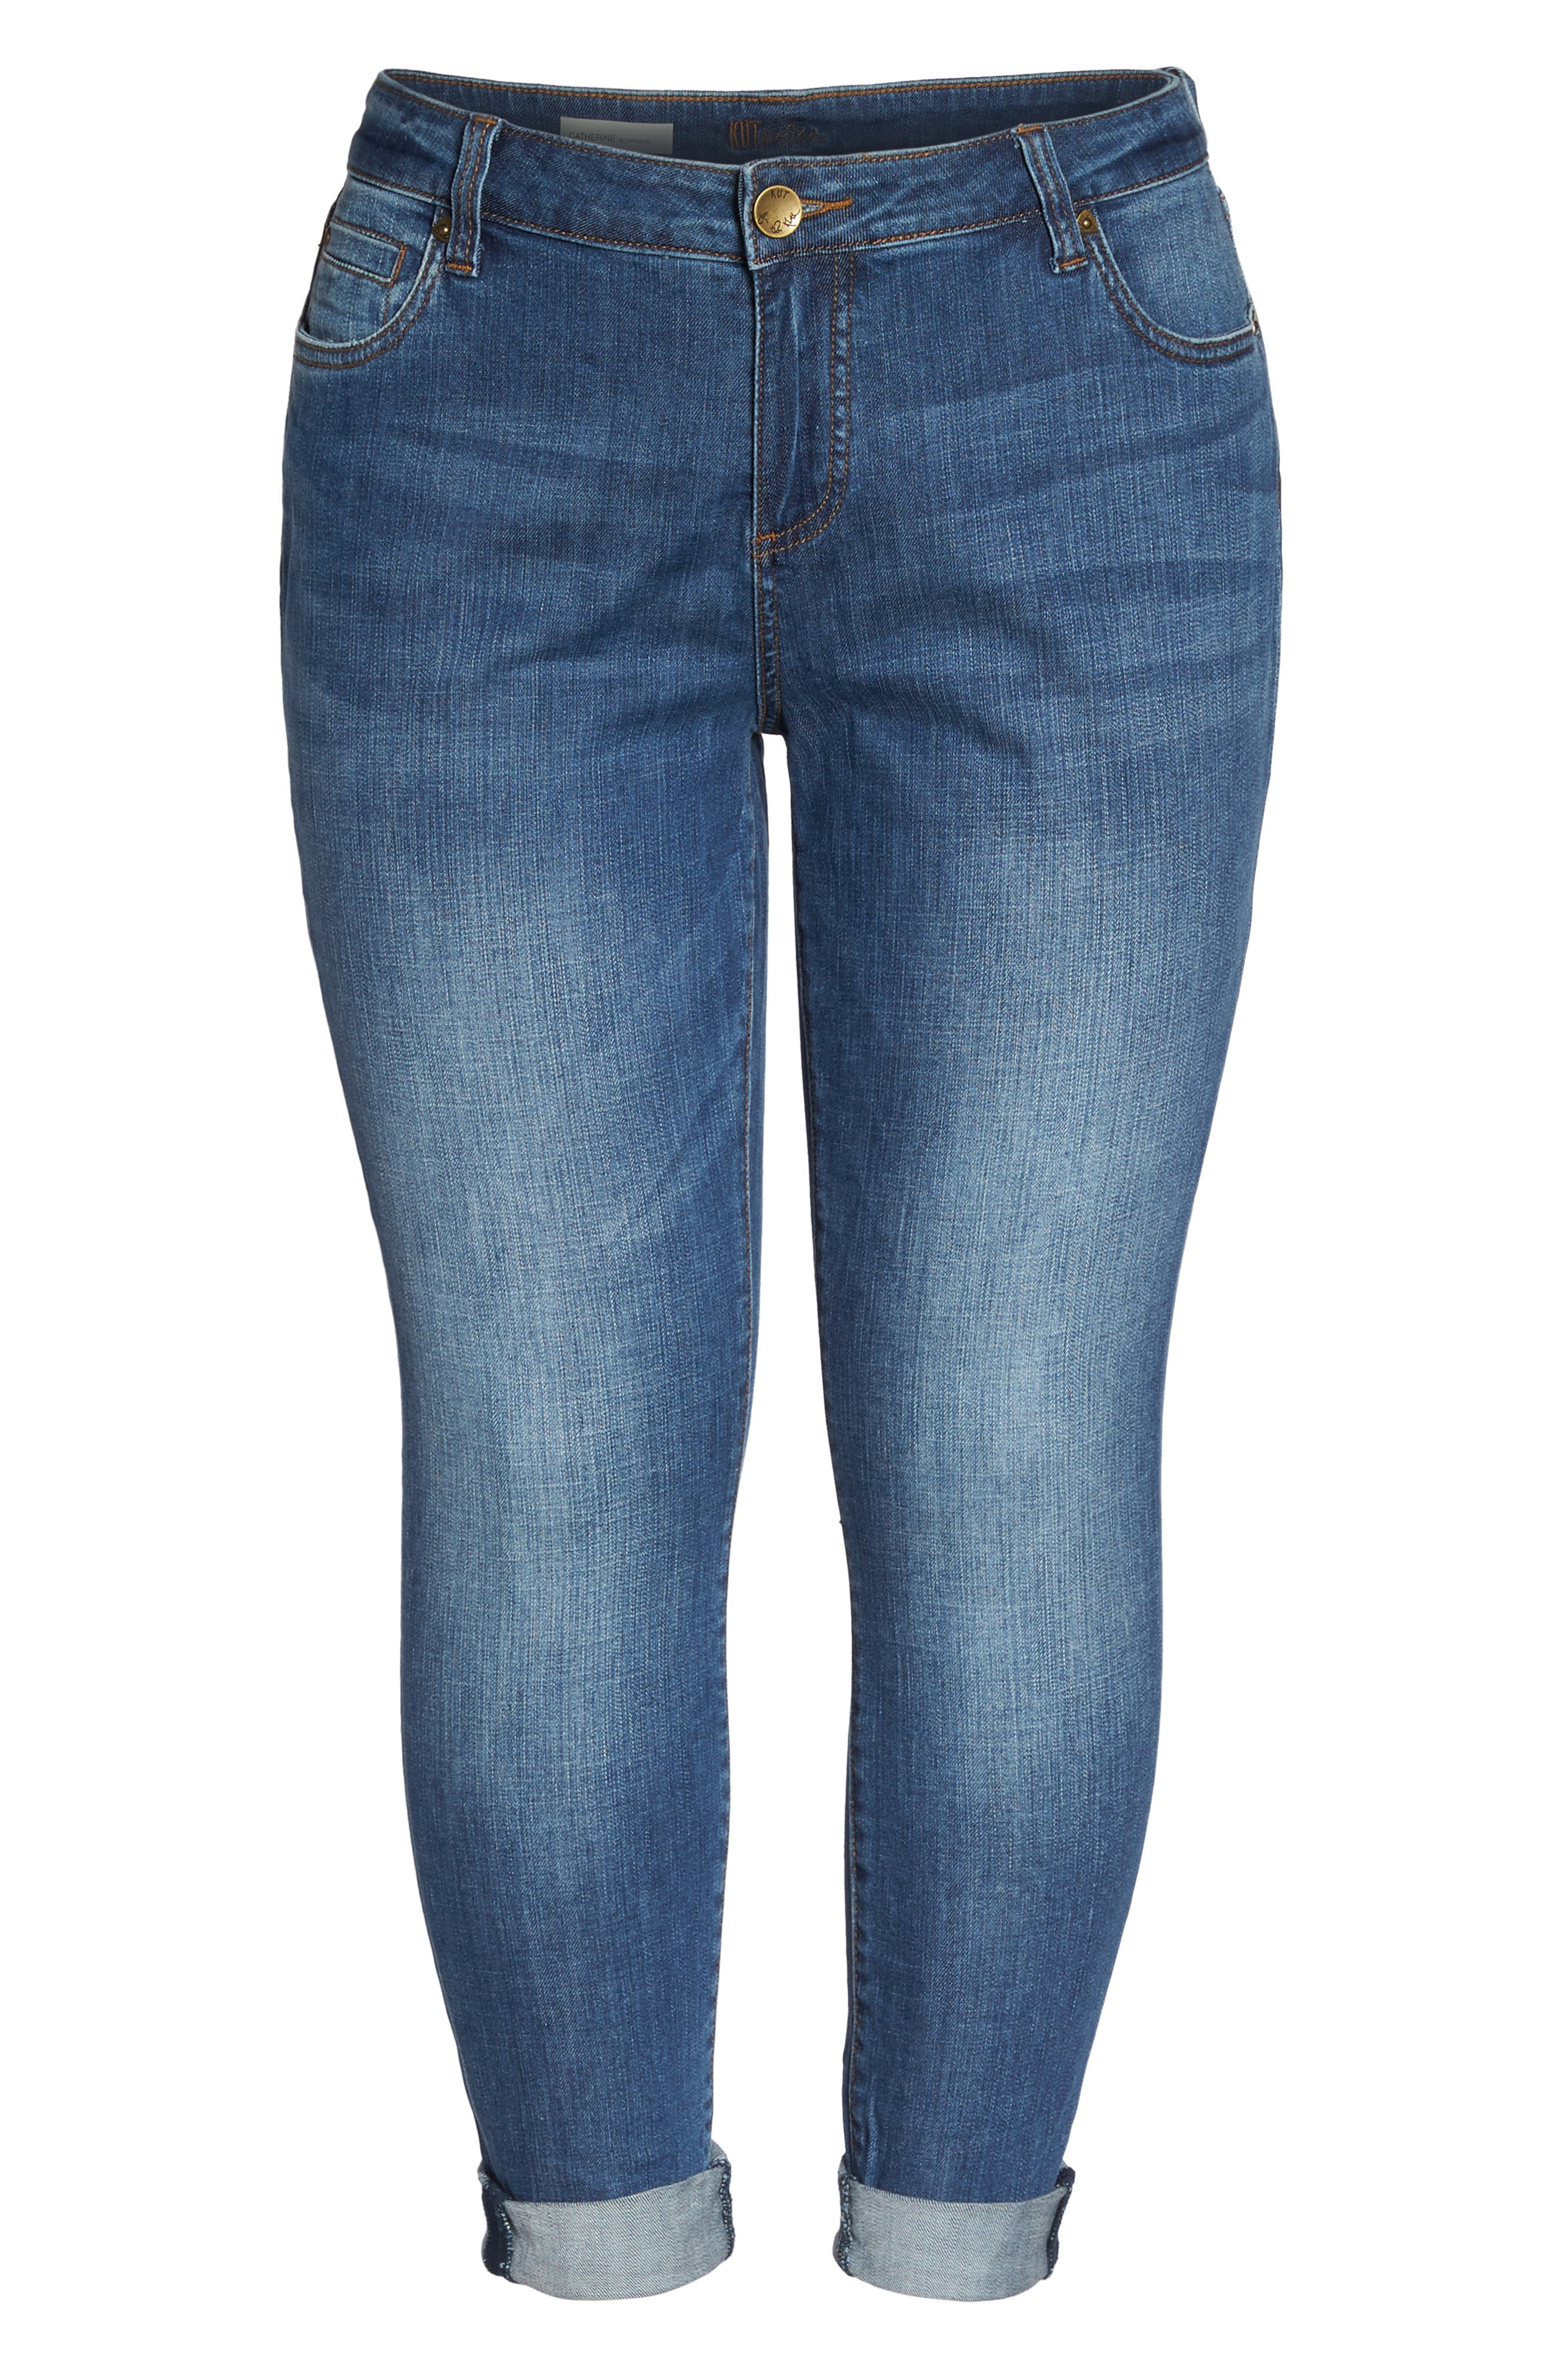 KUT FROM THE KLOTH, Catherine Boyfriend Jeans, Alternate thumbnail 6, color, FERVENT W/ ANTIQUE BASE WASH